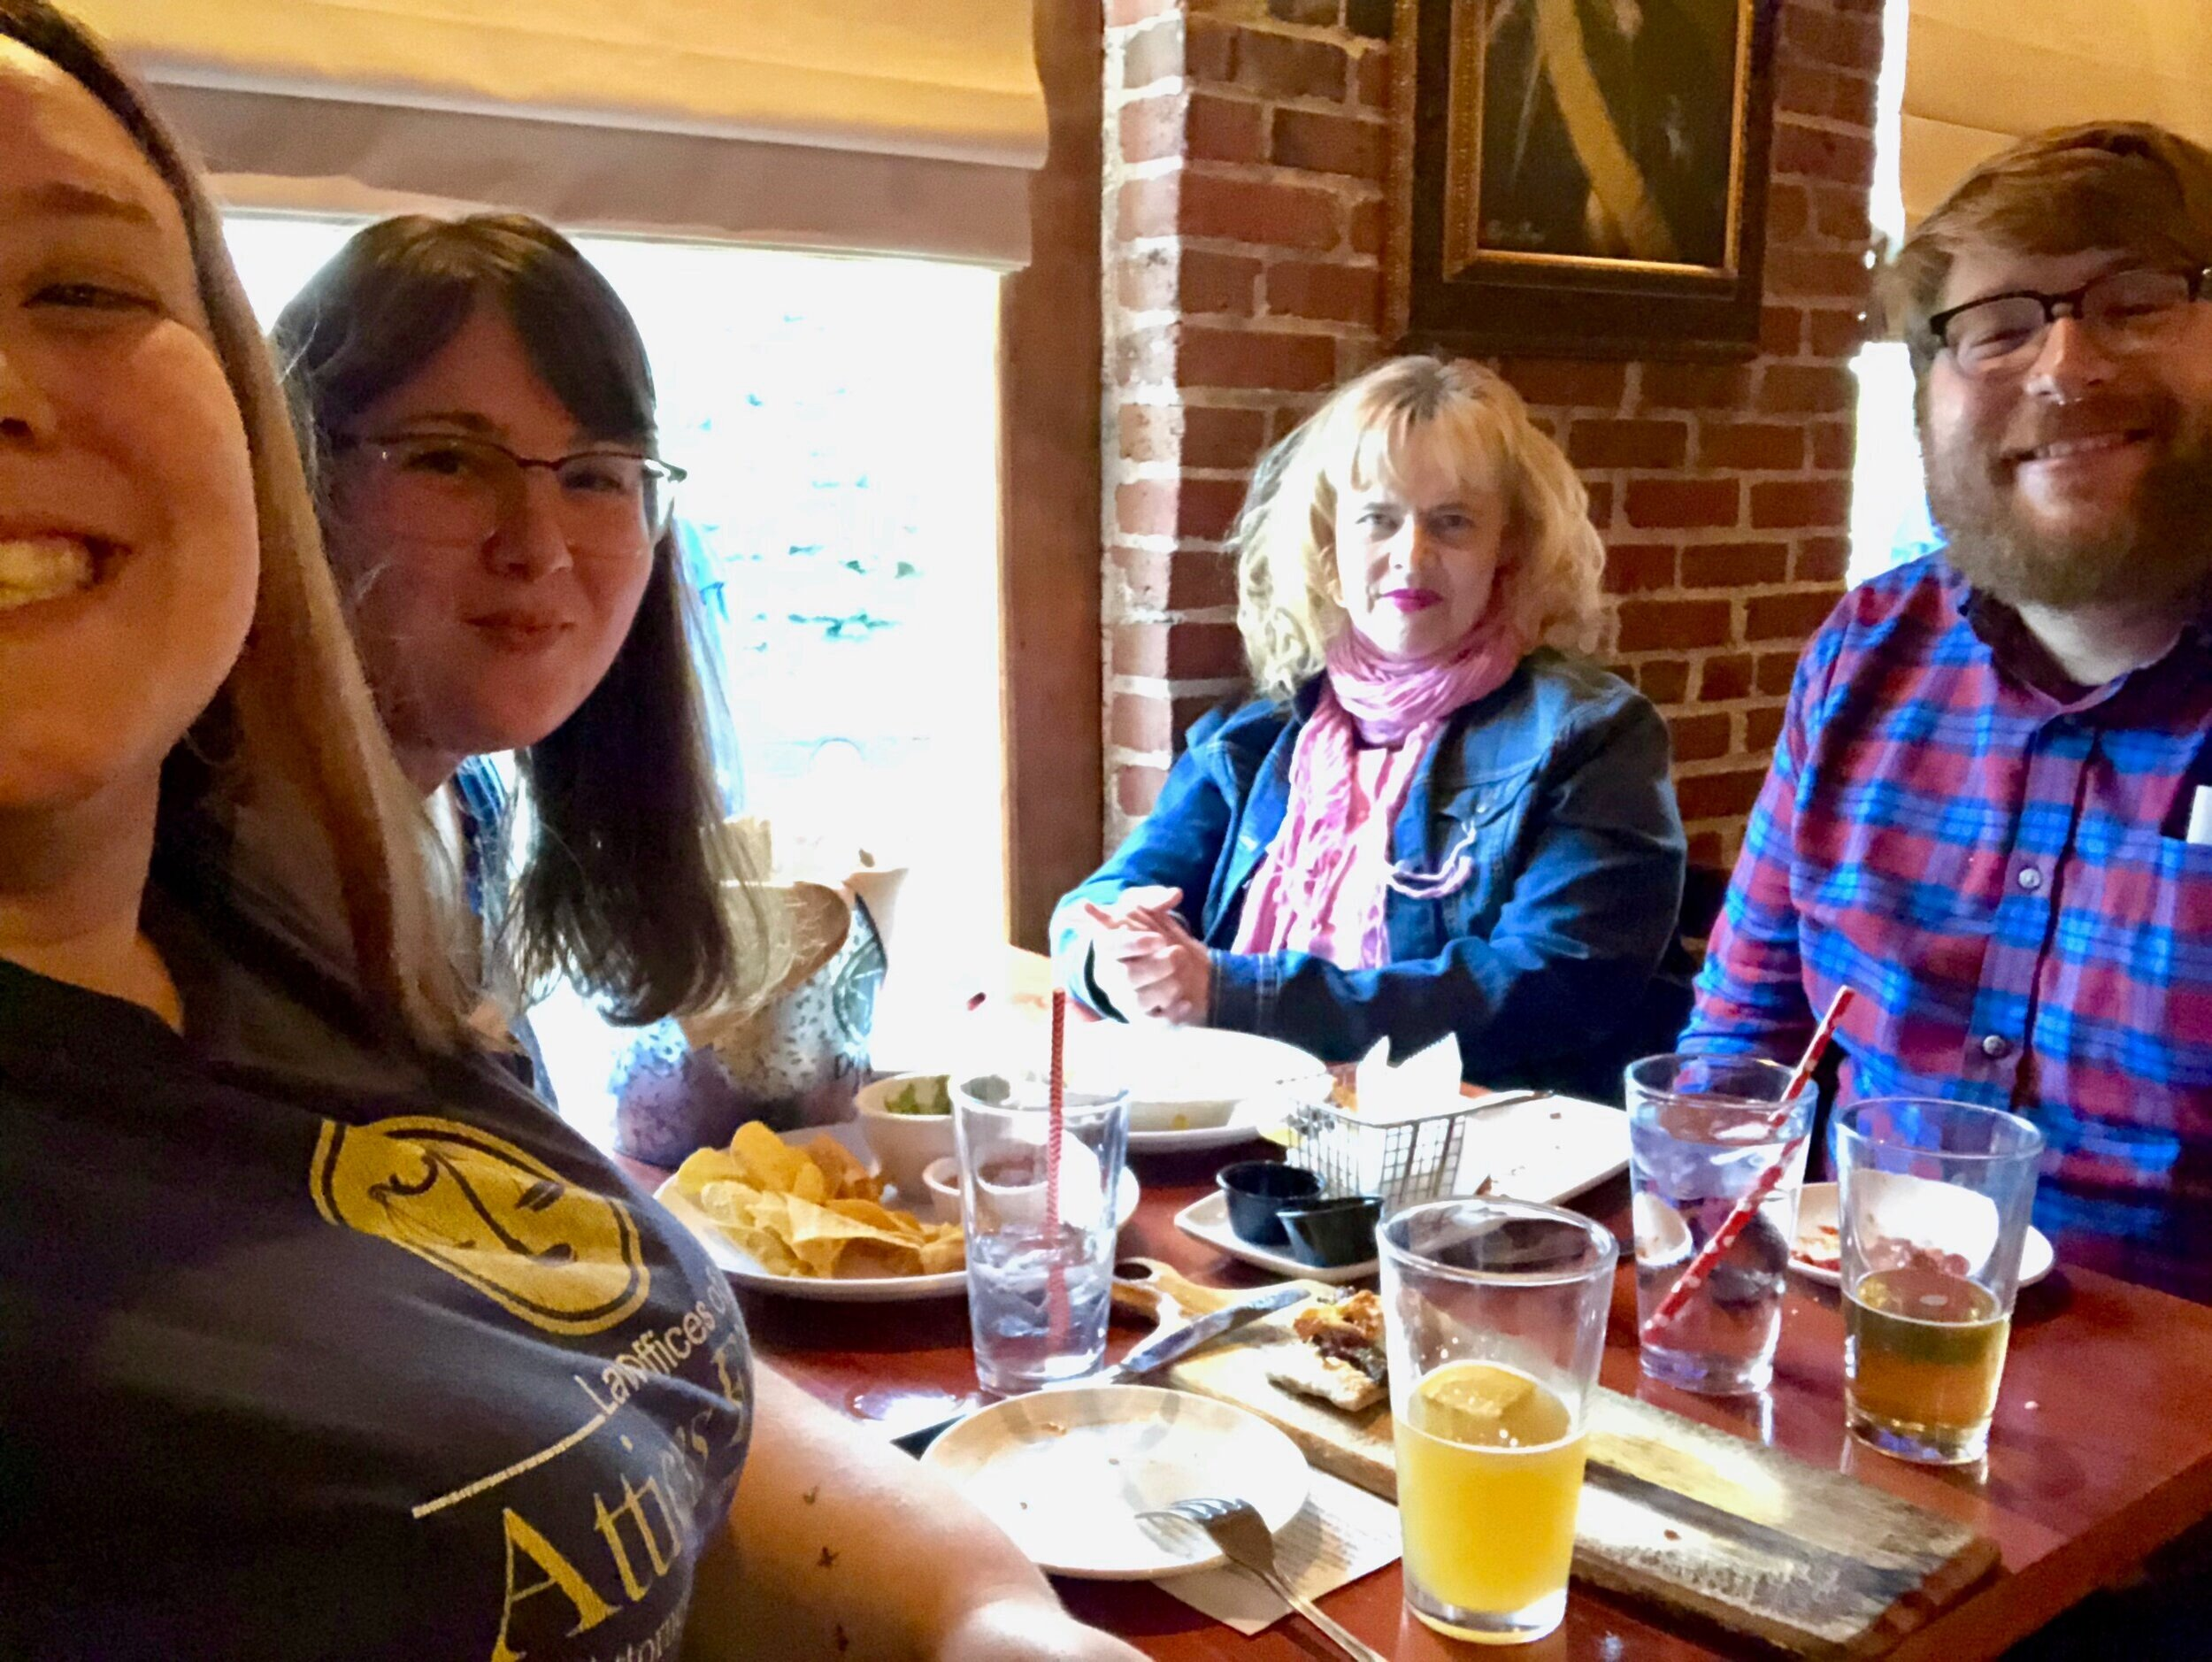 Every other Wednesday, Church on the Bend meets for discussion, drinks, and apps at Lucky Dog Gastropub in Conshohocken.